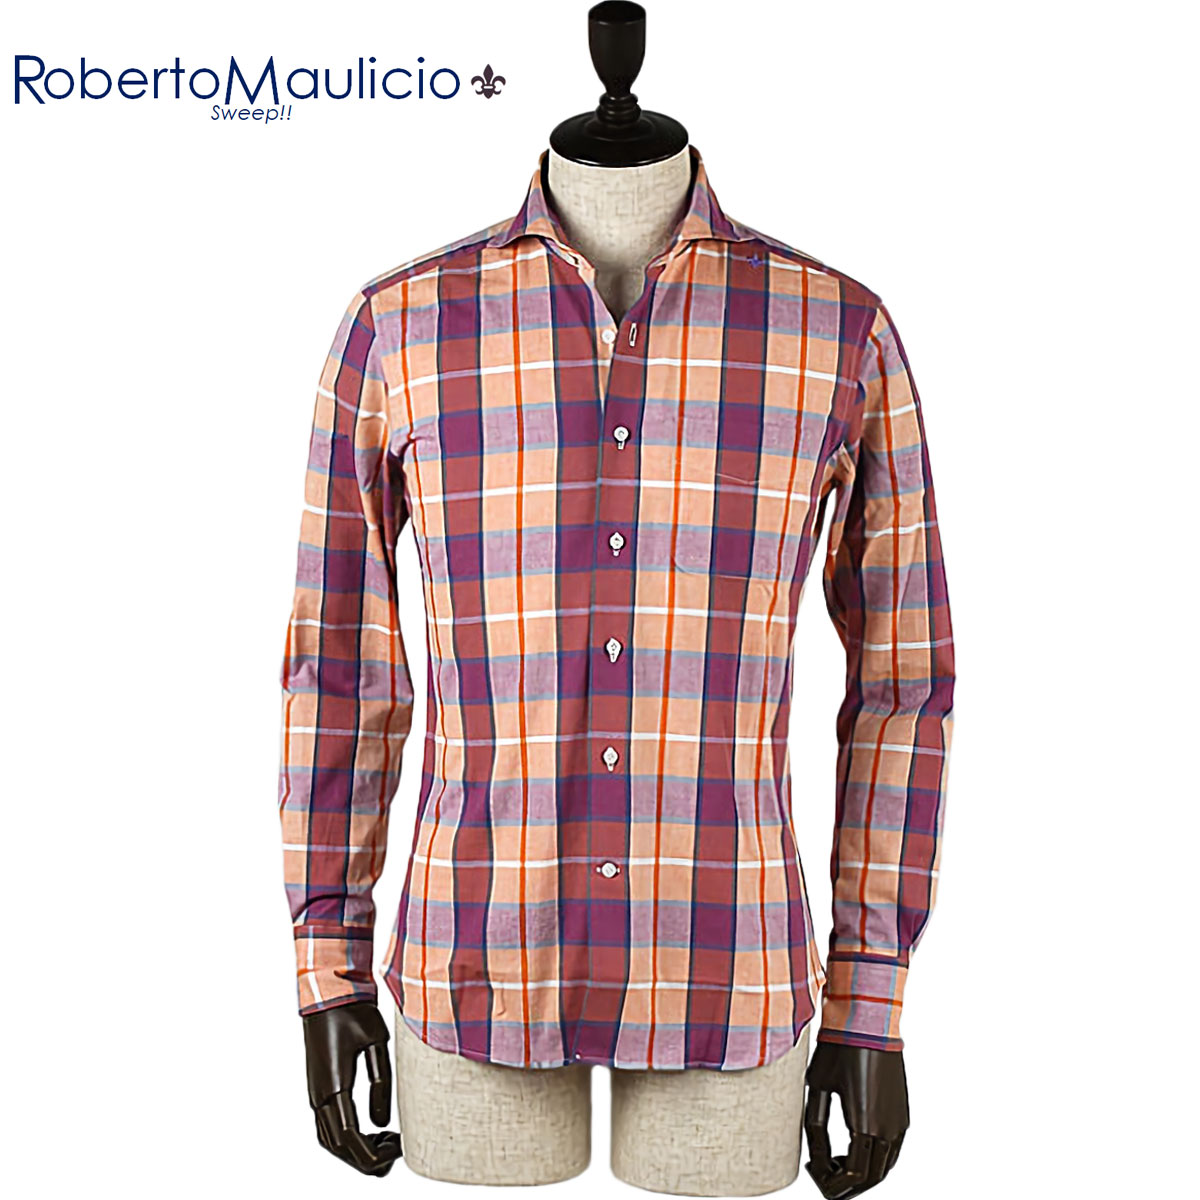 Roberto Maulicio Sweep!! / COTTON EURO-CHECK(PINK)